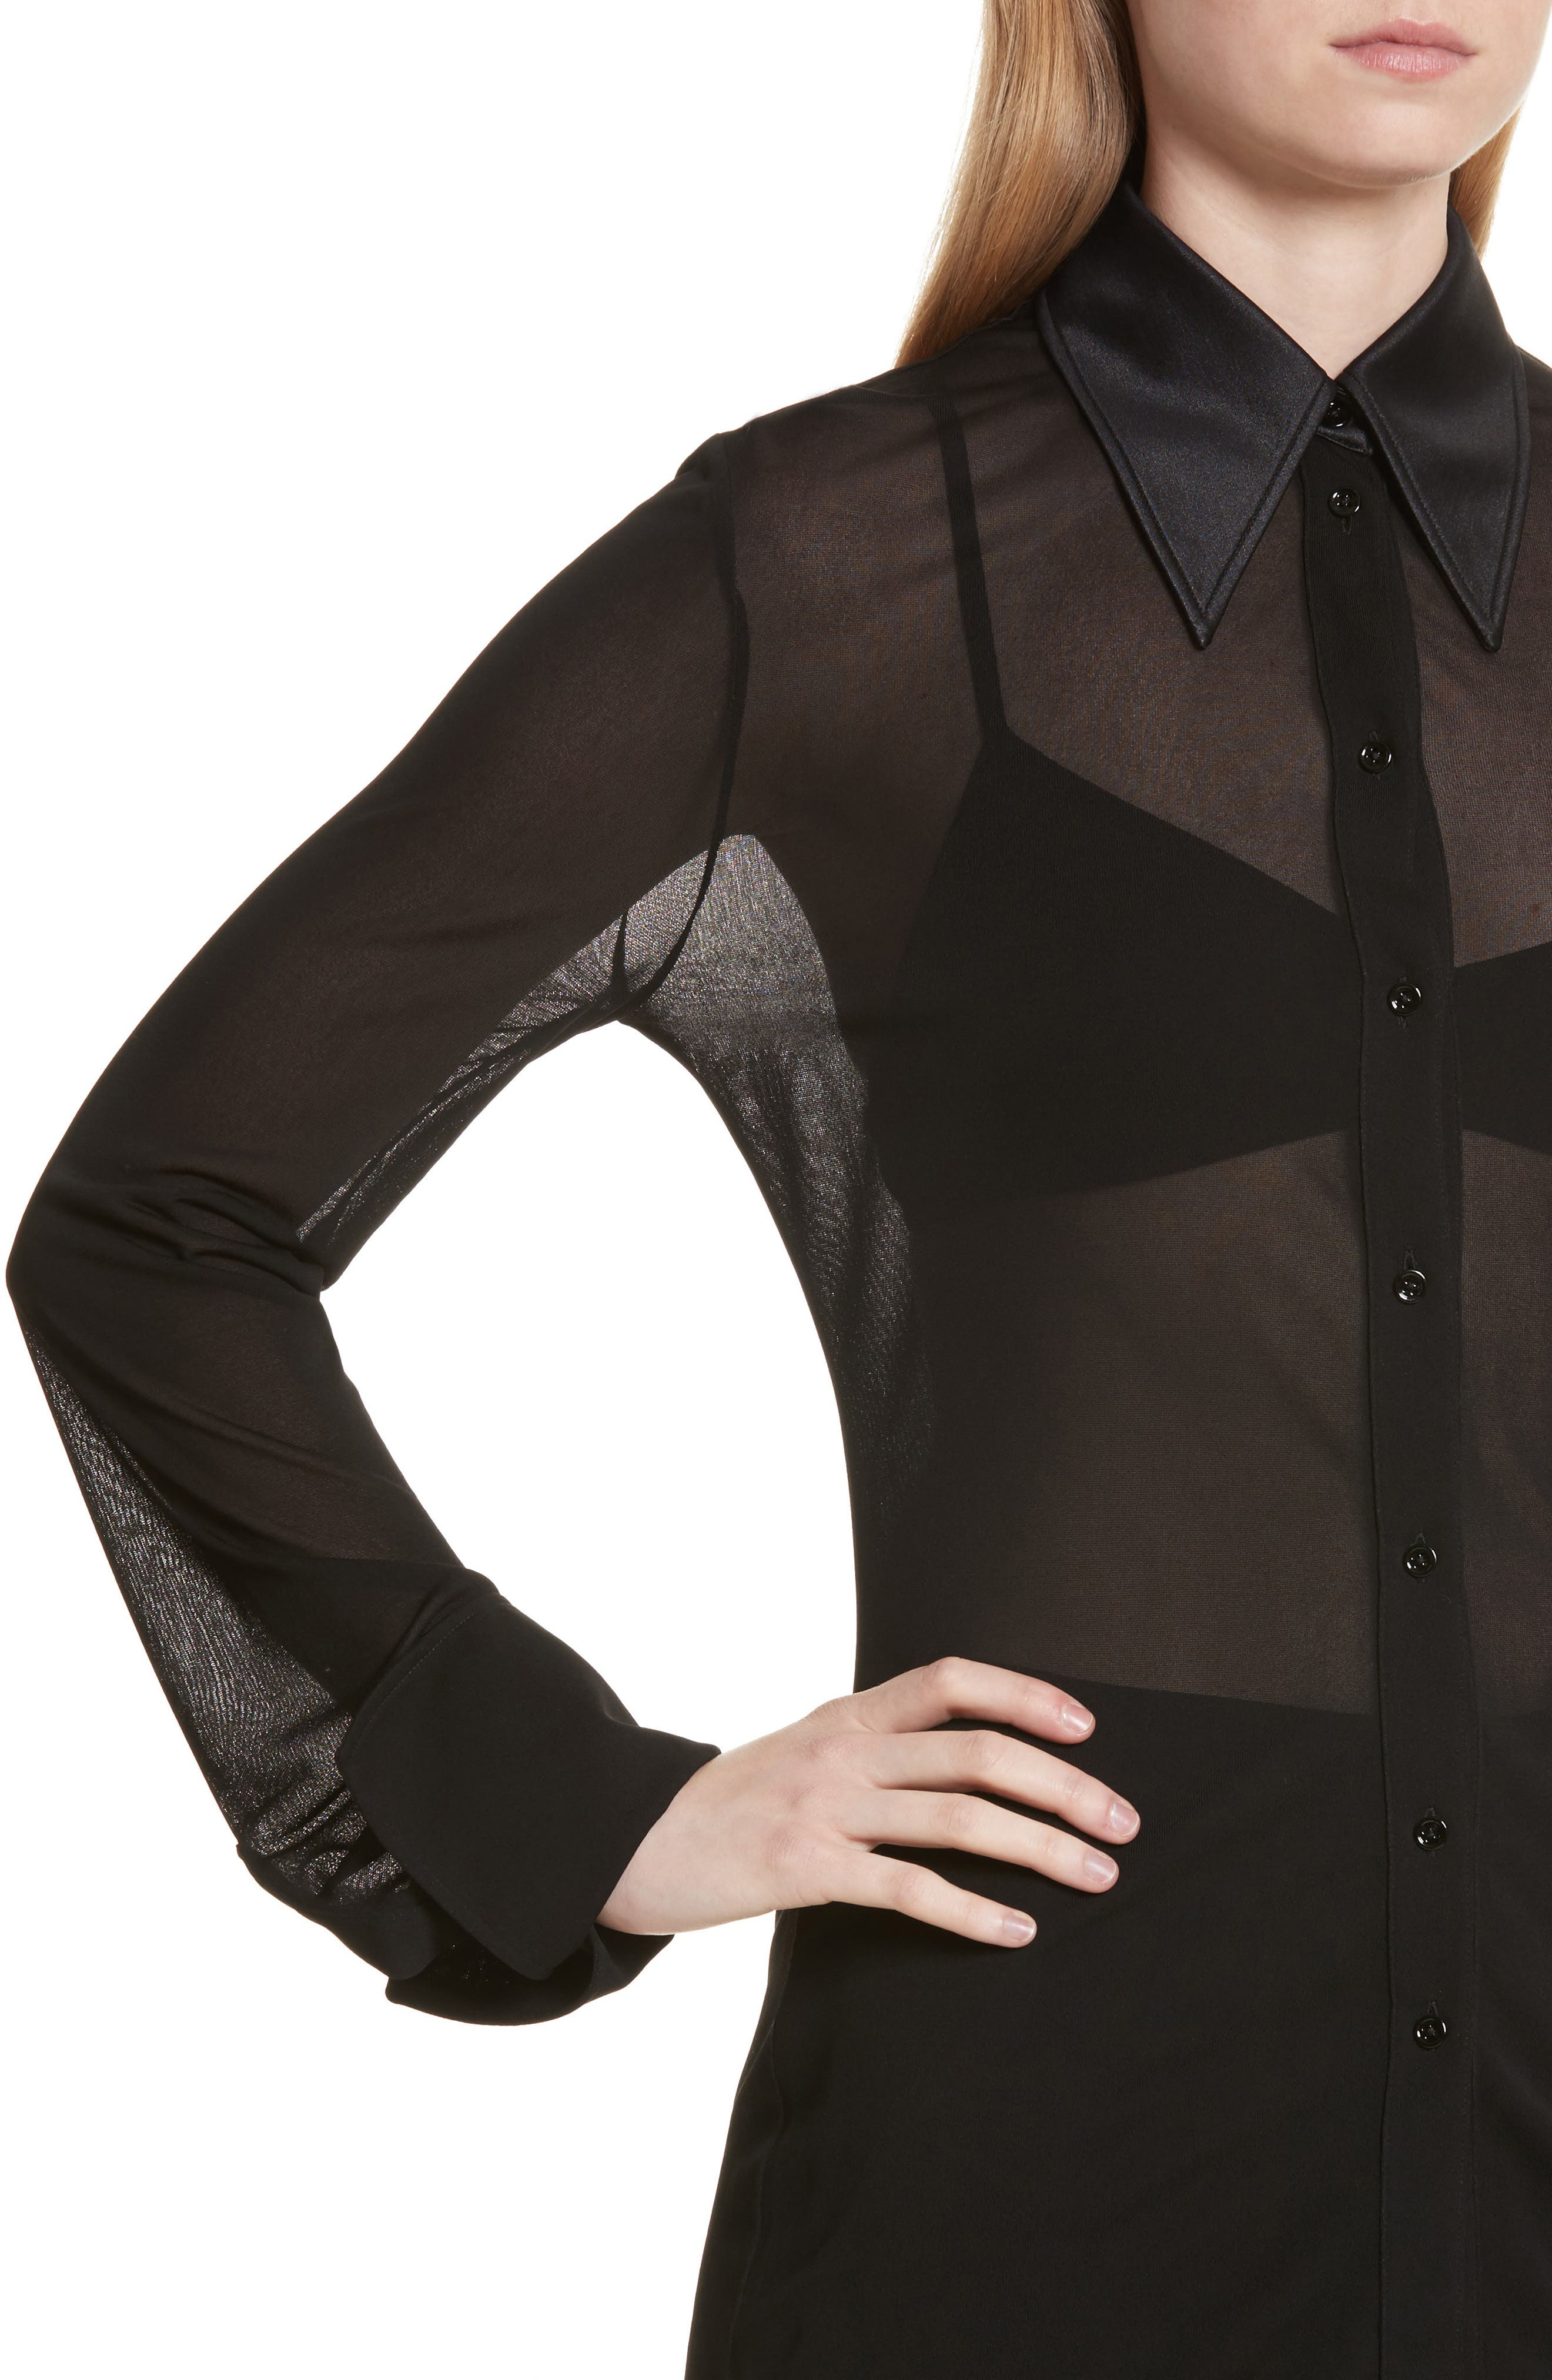 Slater Sheer Crepe Net Shirt,                             Alternate thumbnail 4, color,                             001